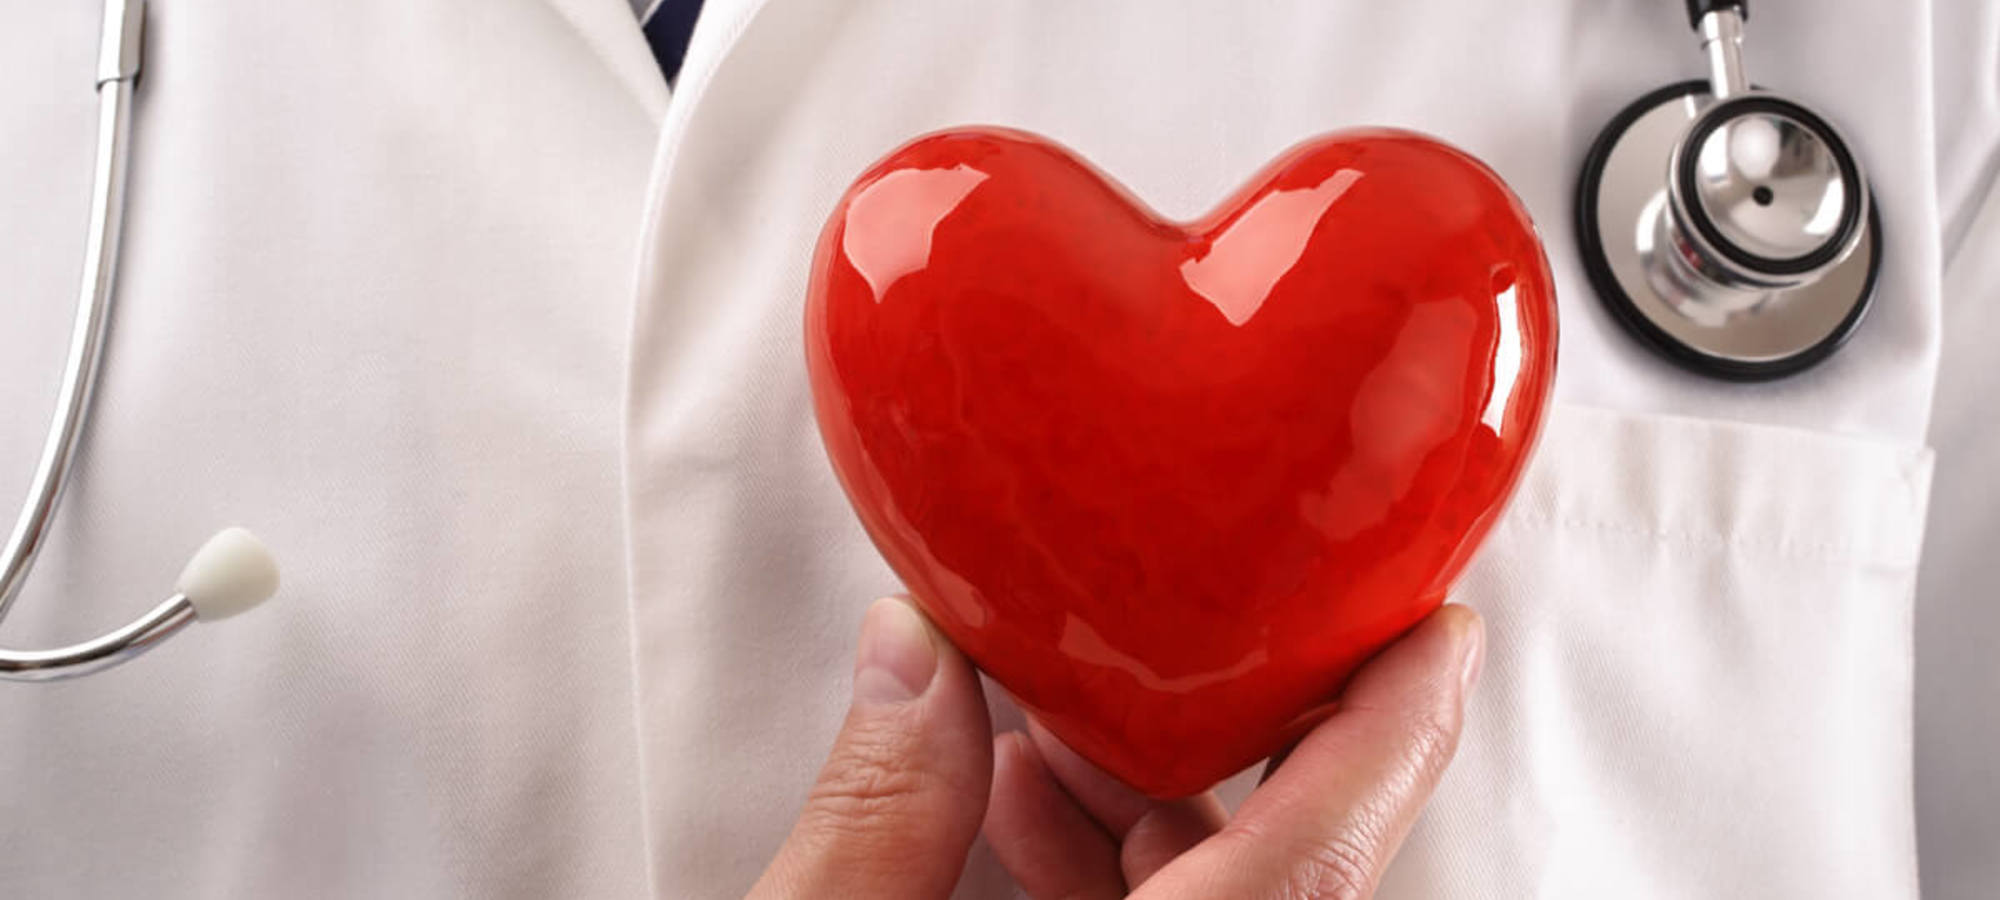 cardiologist jobs and recruitment, search cardiologist jobs and register cardiologist vacancies